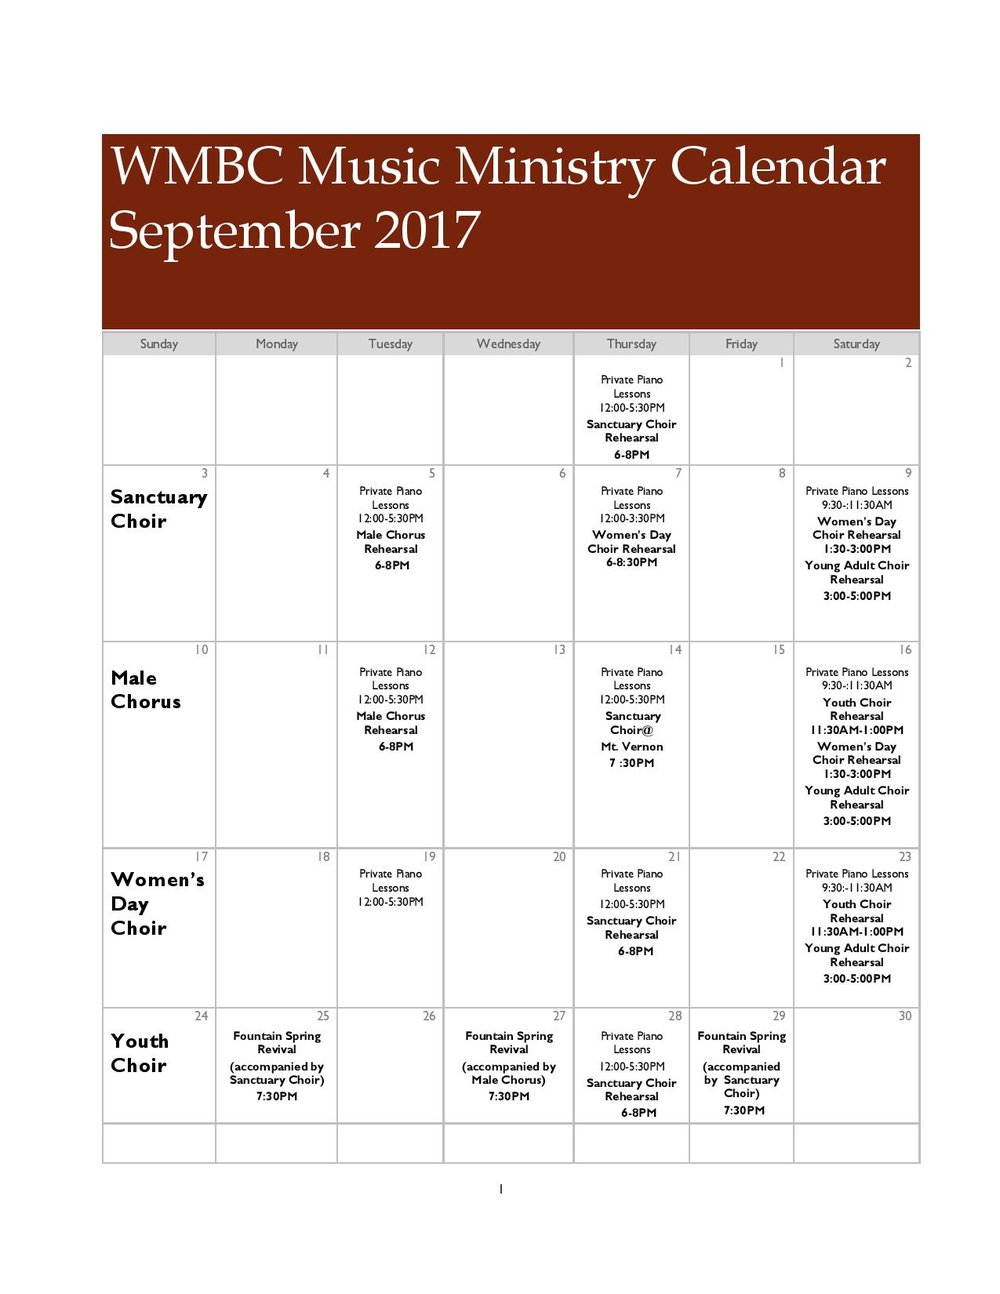 WMBC Music Ministry Newsletter September 2017  (Autosaved)-page-004.jpg